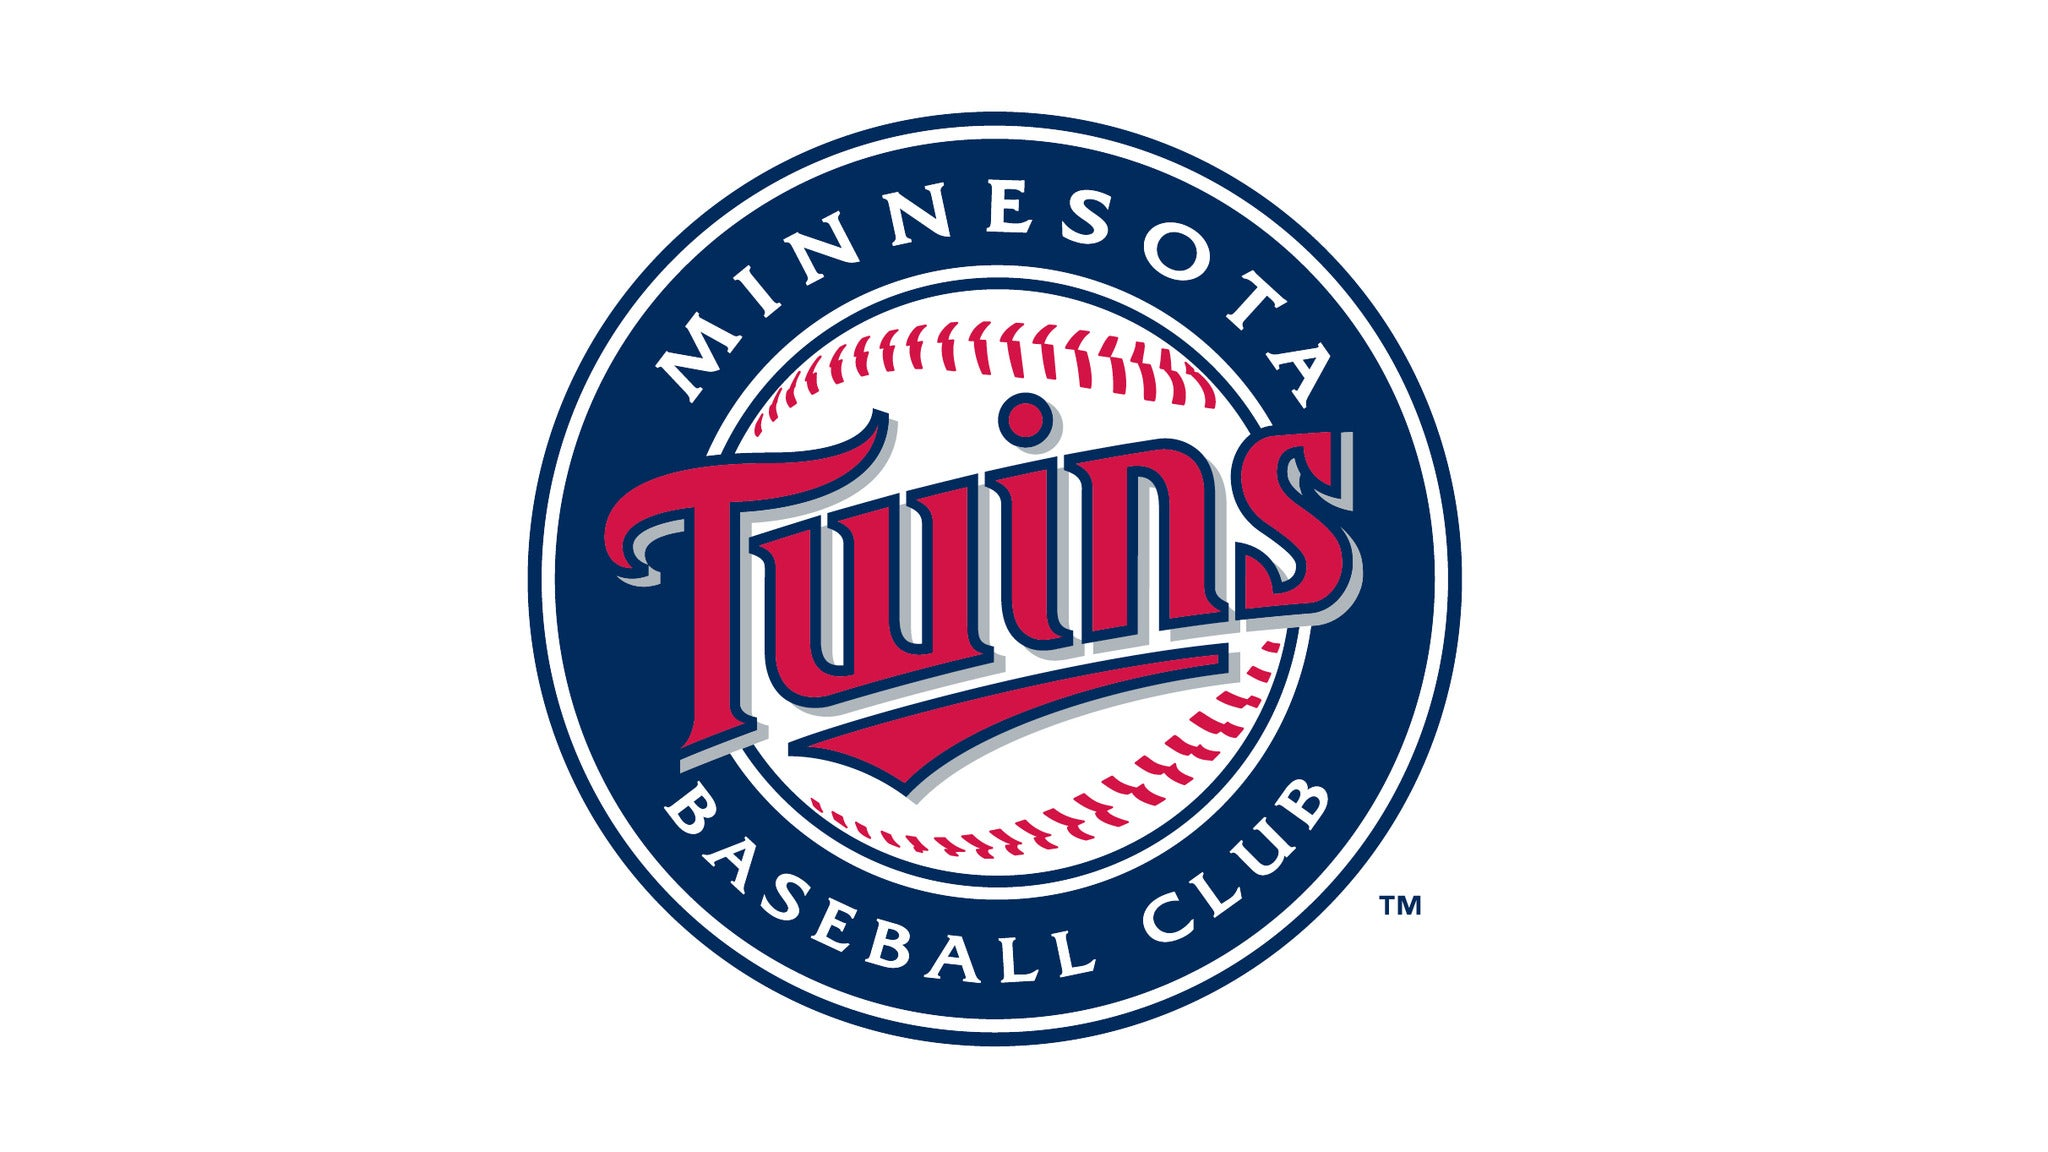 Minnesota Twins vs. Oakland Athletics at Target Field